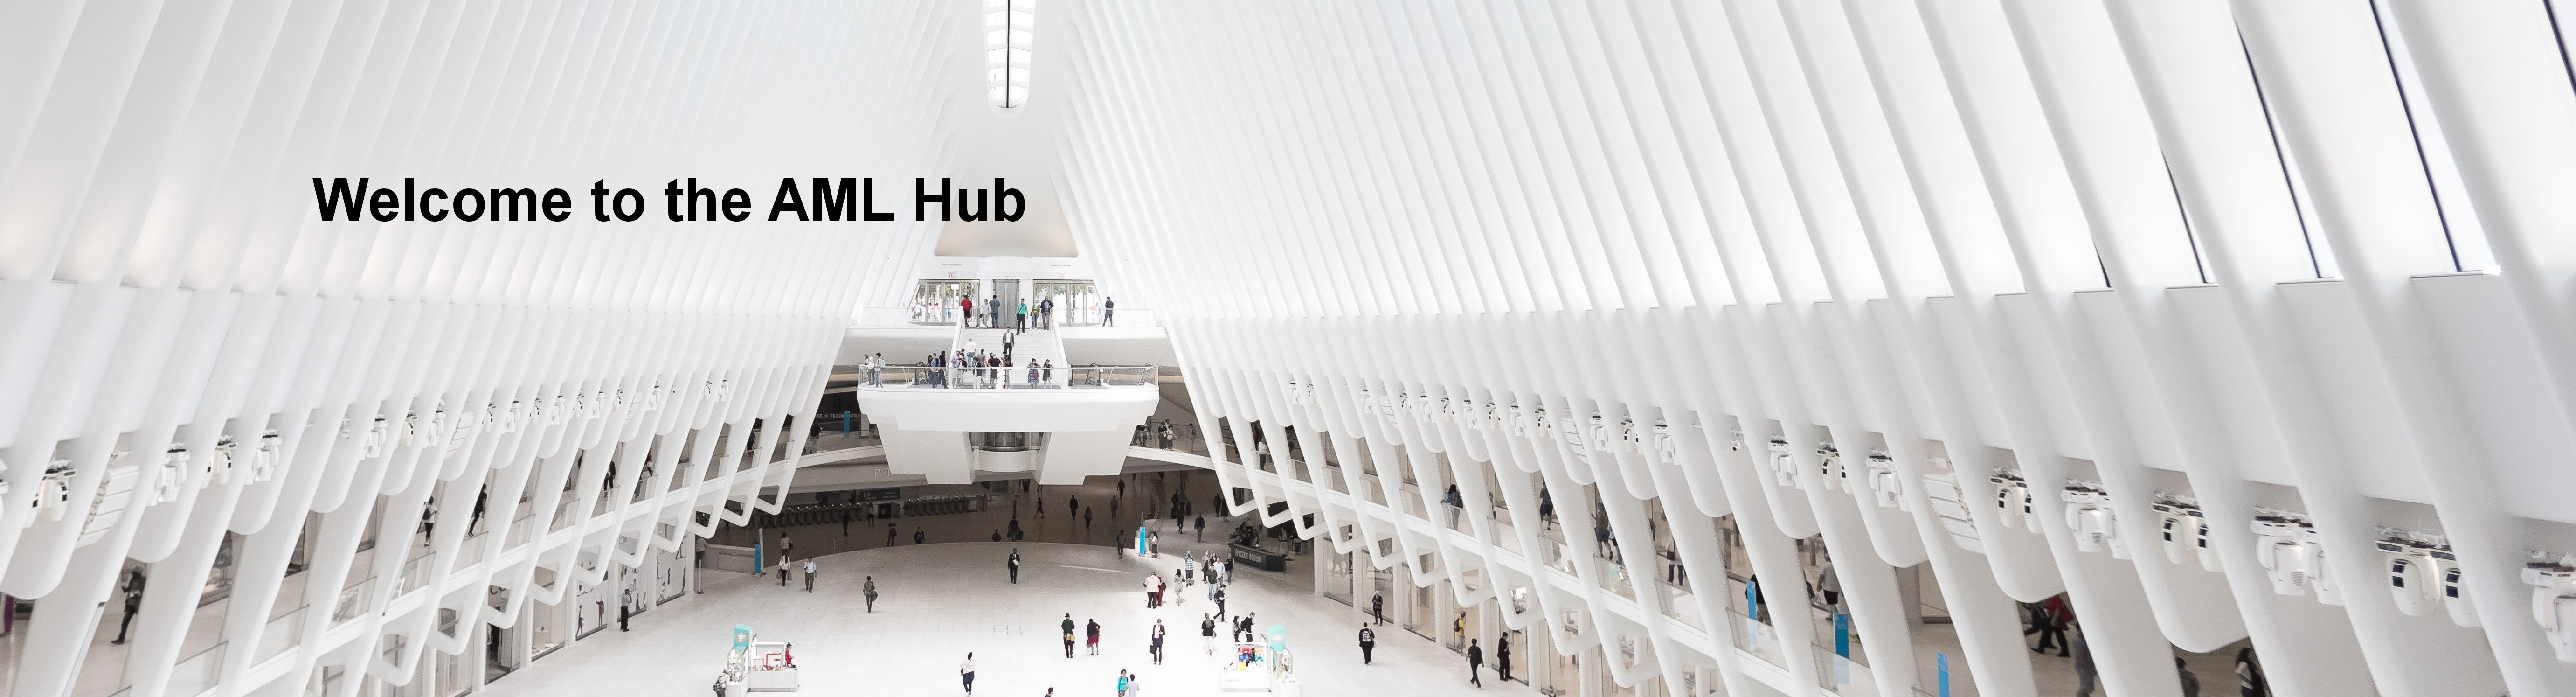 Slide: Welcome to the AML Hub - a photo of a central hub in a building